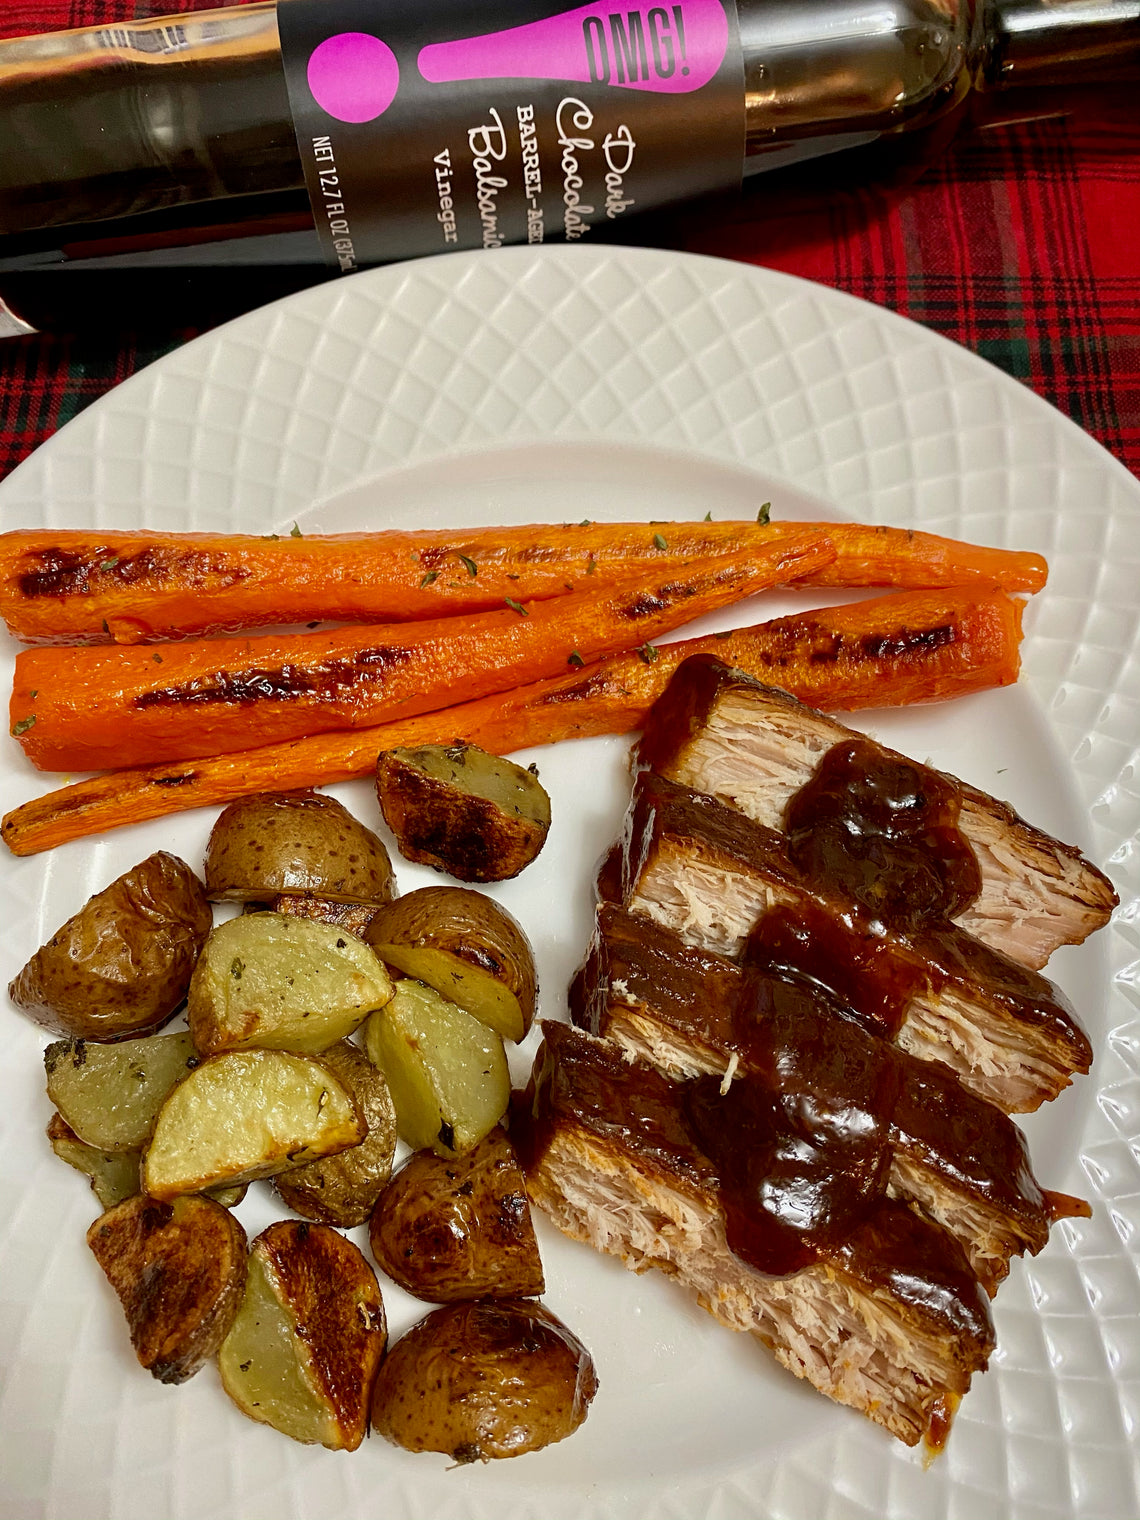 Dark Chocolate Balsamic (Crockpot) Pork Tenderloin with Roasted Potatoes and Carrots